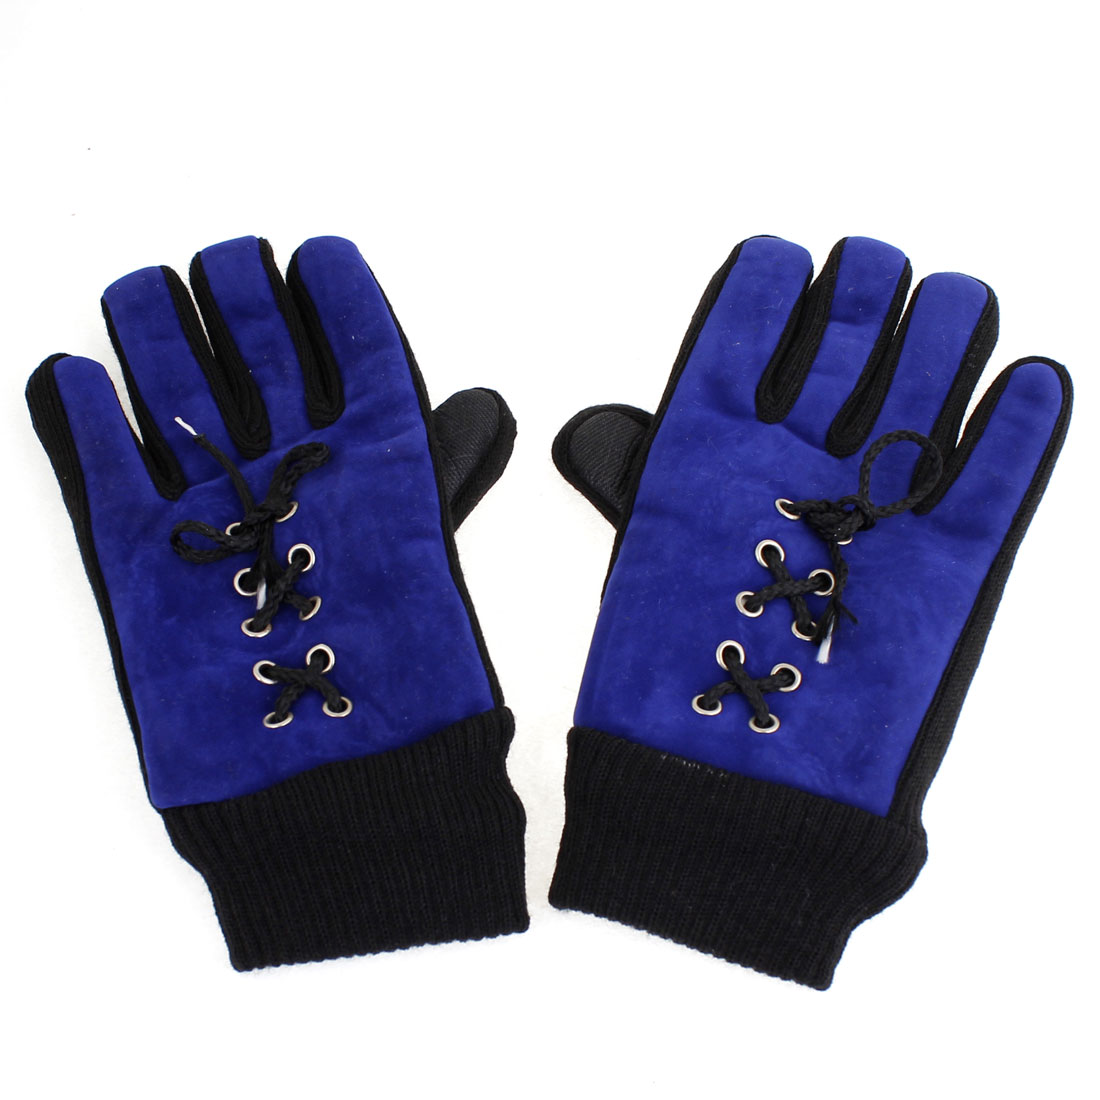 Pair Ribbed Full Fingers Lace Up Winter Gloves Blue Black for Ladies